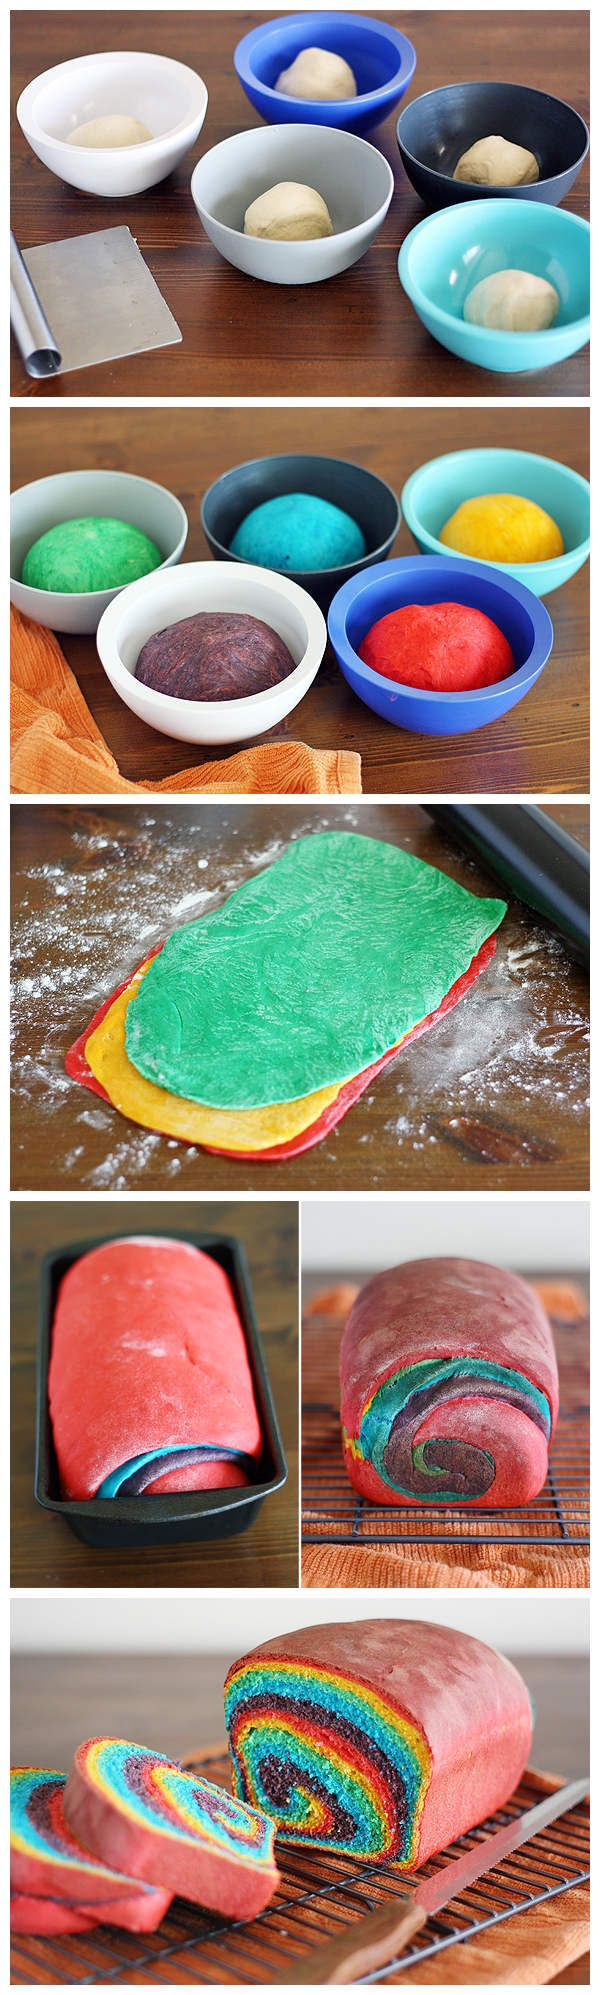 Rainbow Bread could use this to make cute sandwiches for the party